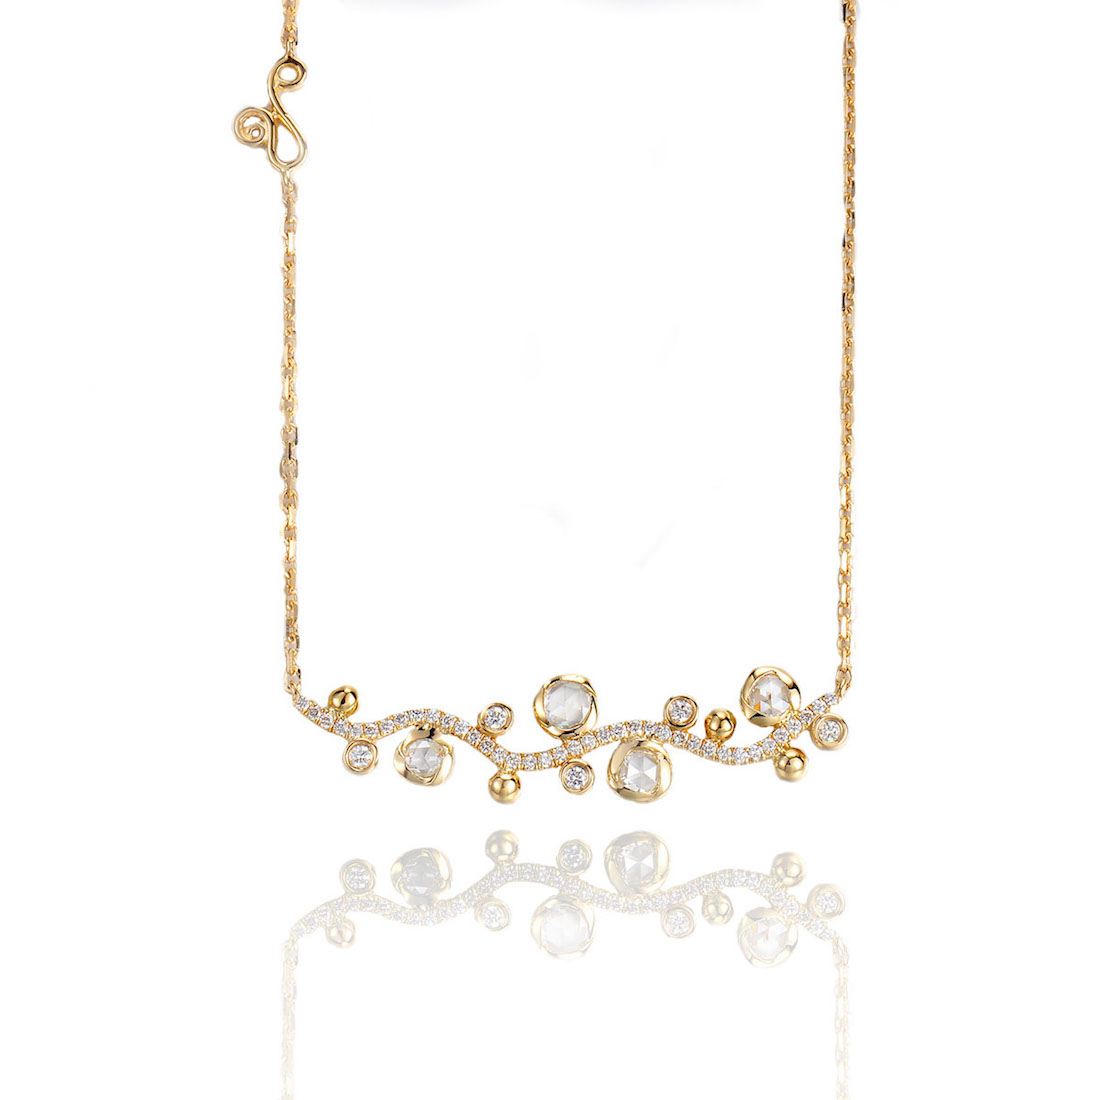 floral-vine-twist-bezel-rose-cut-diamond-horizontal-wavy-bar-necklace-18k-gold-jewelyrie